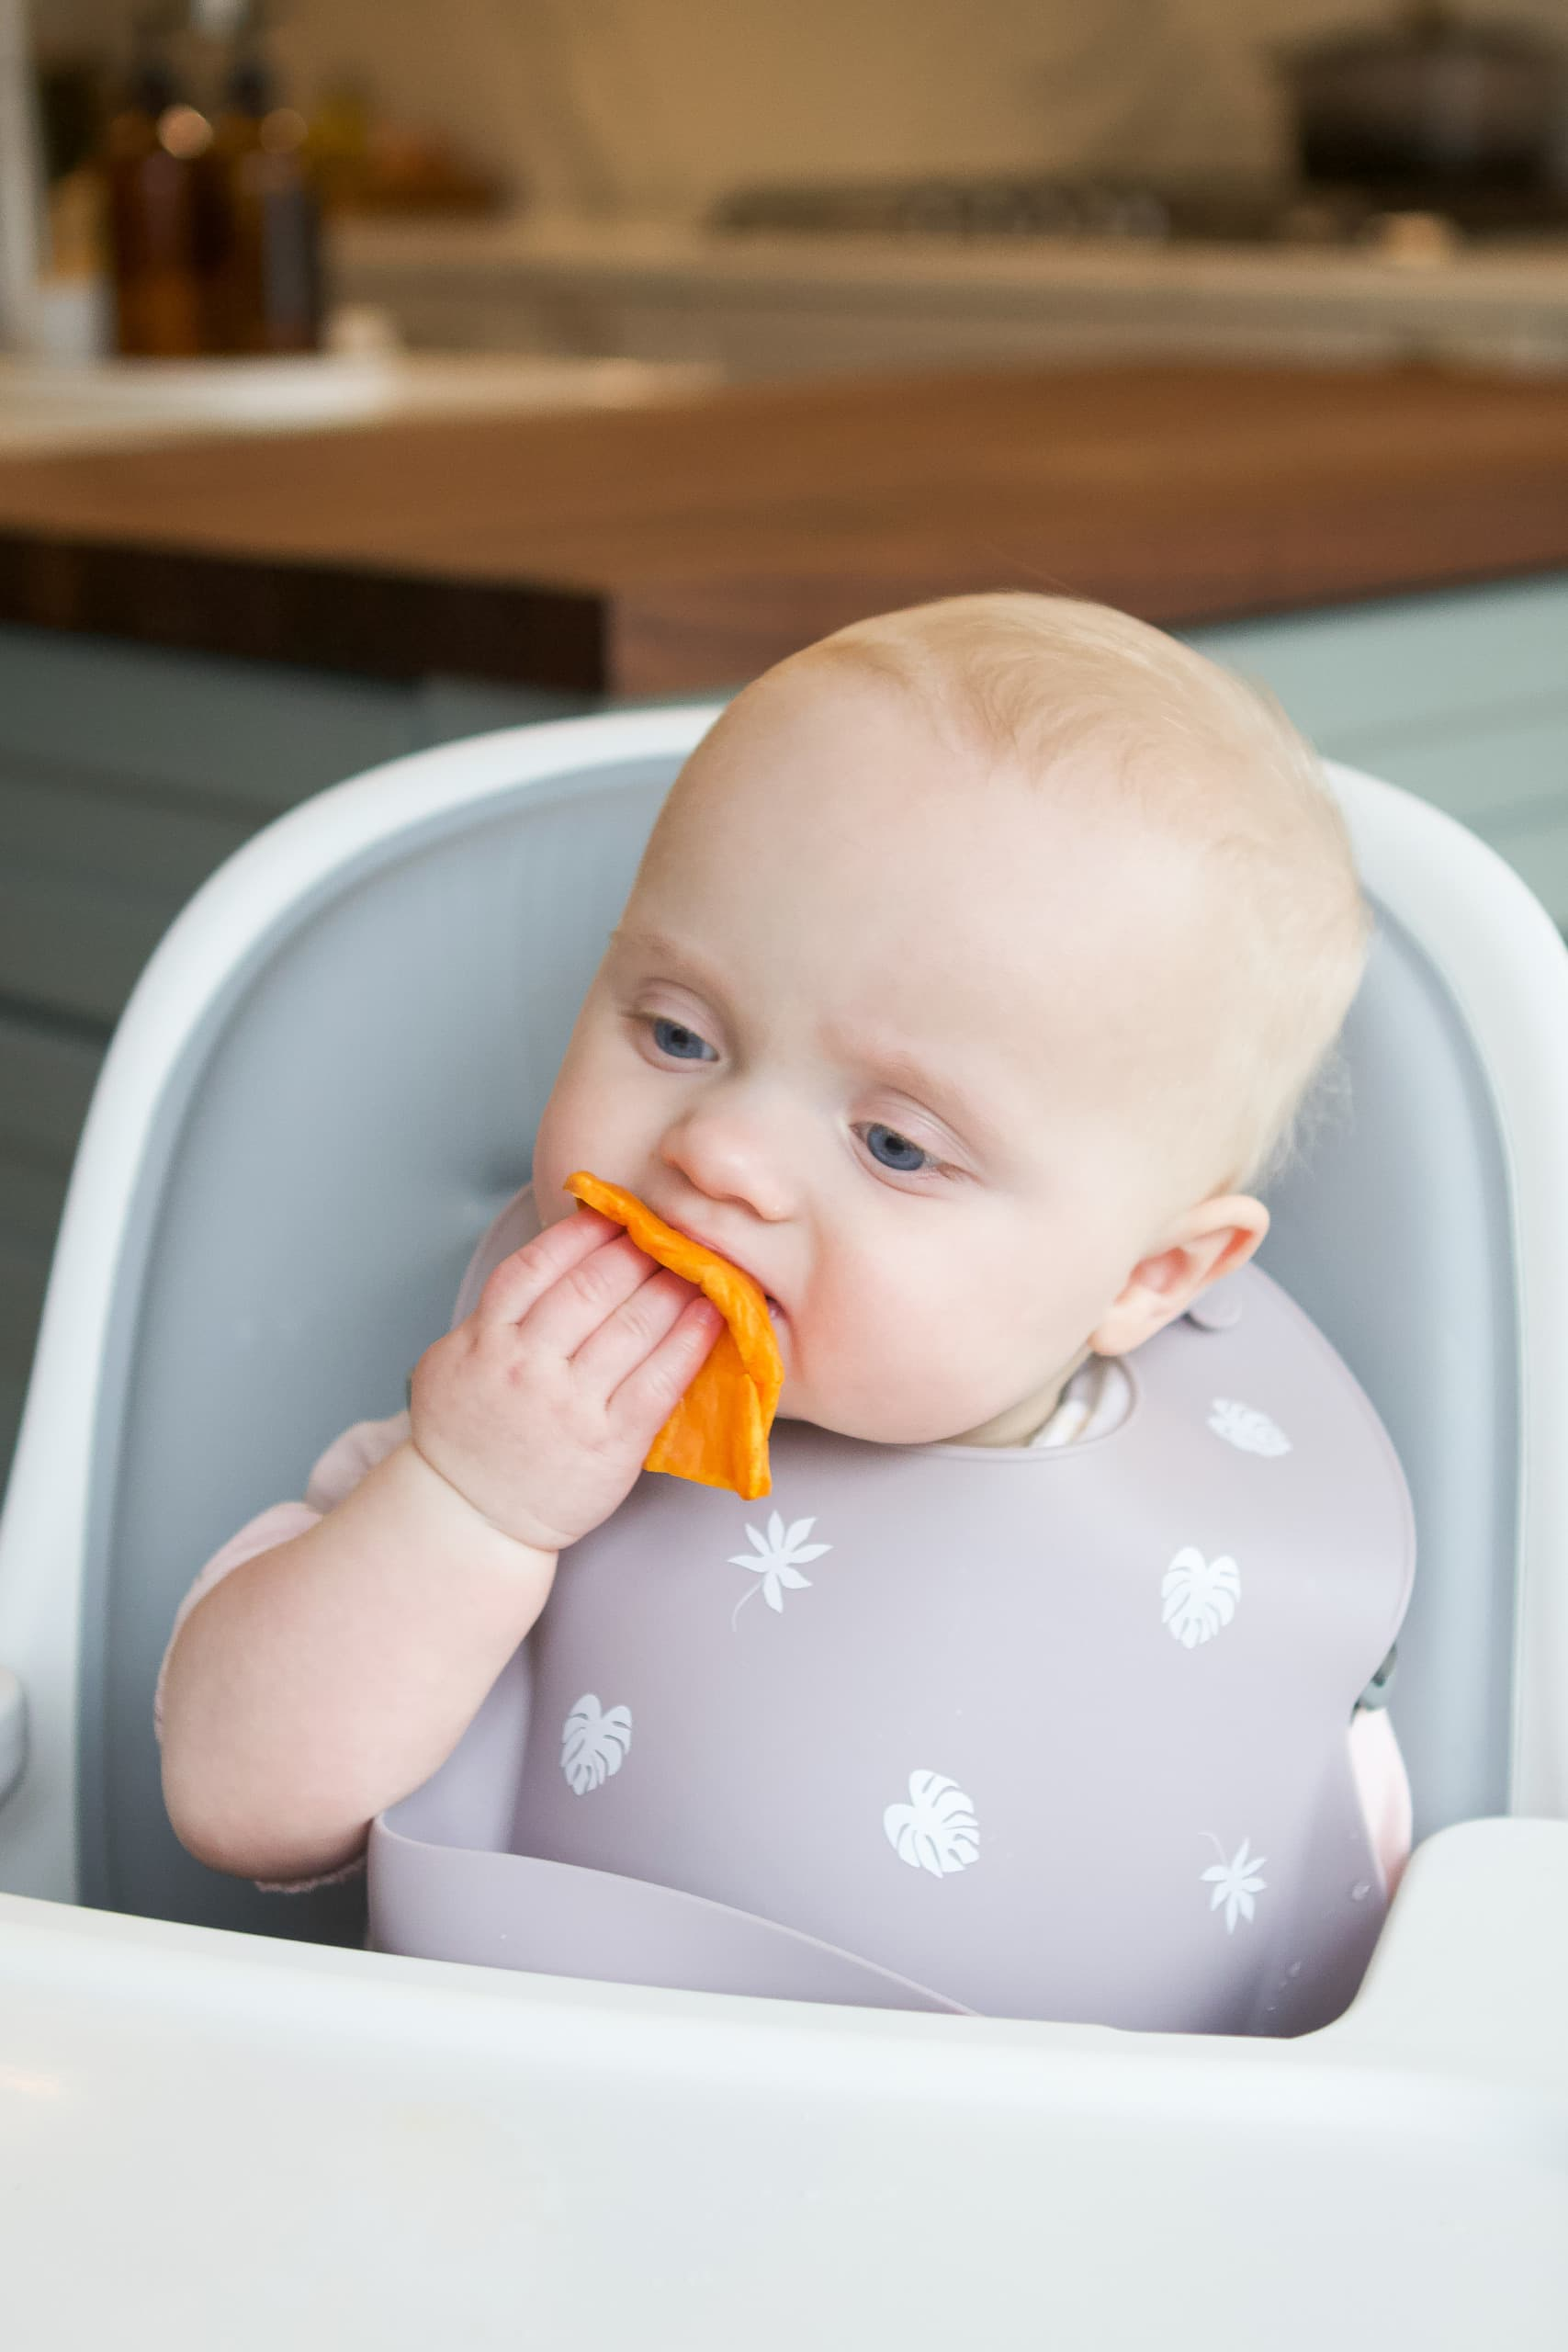 Rory doing baby led weaning to eat sweet potatoes